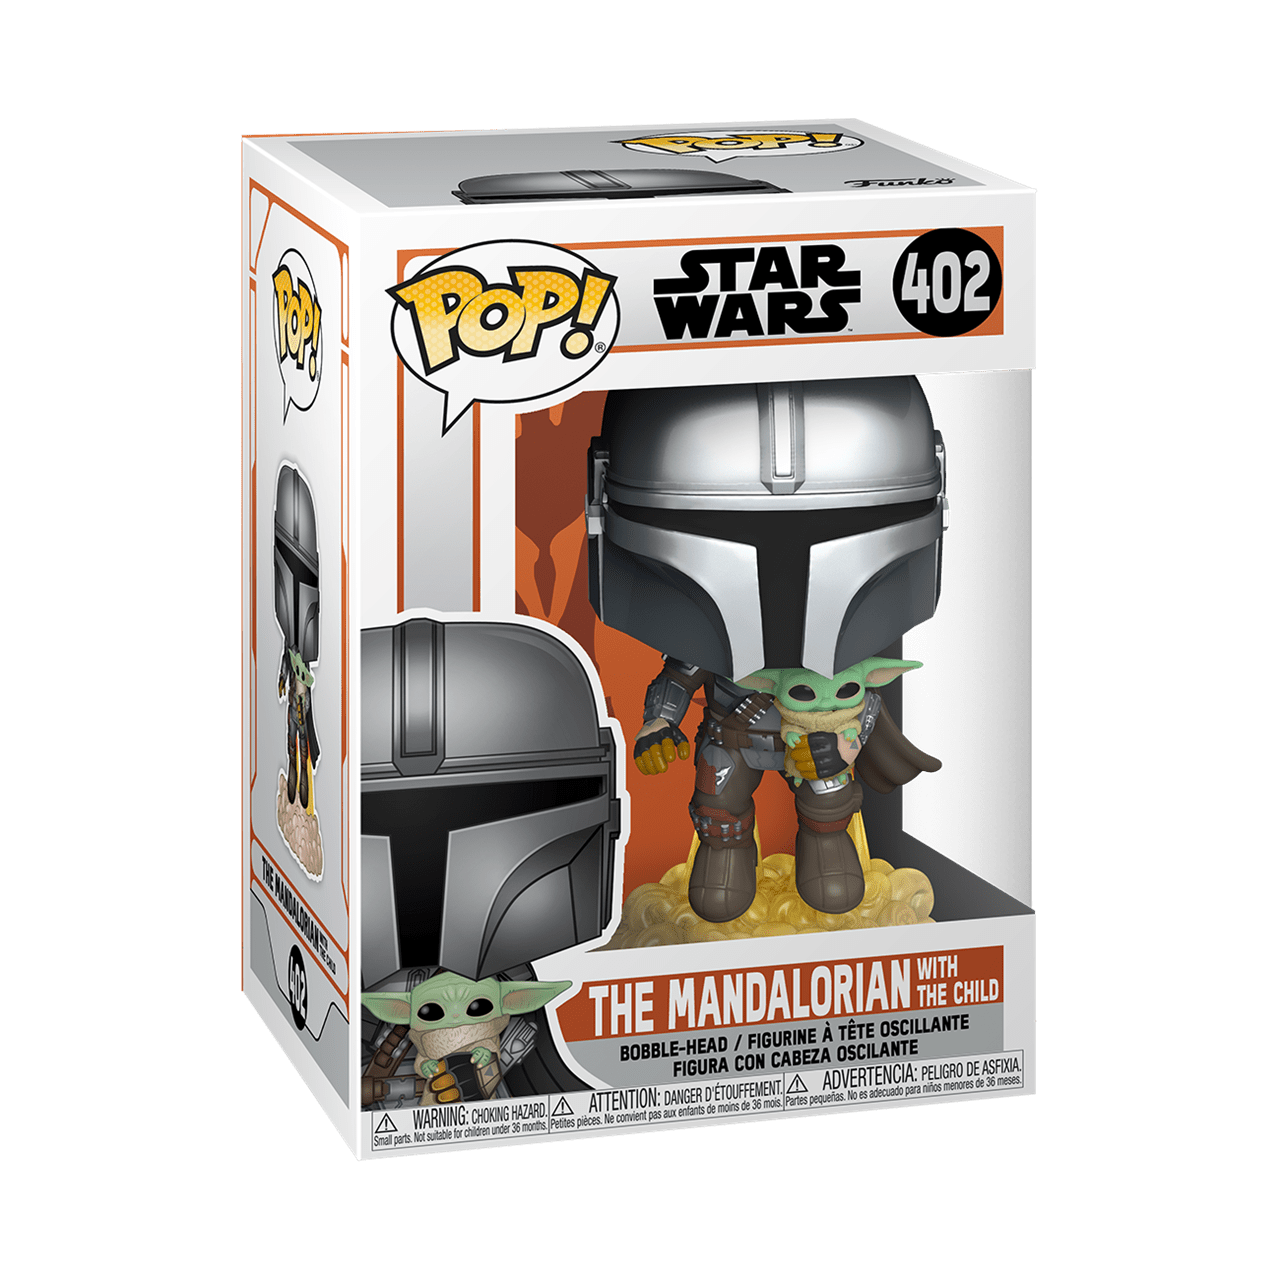 The Mandalorian Flying with The Child (402) Star Wars Pop Vinyl - 2